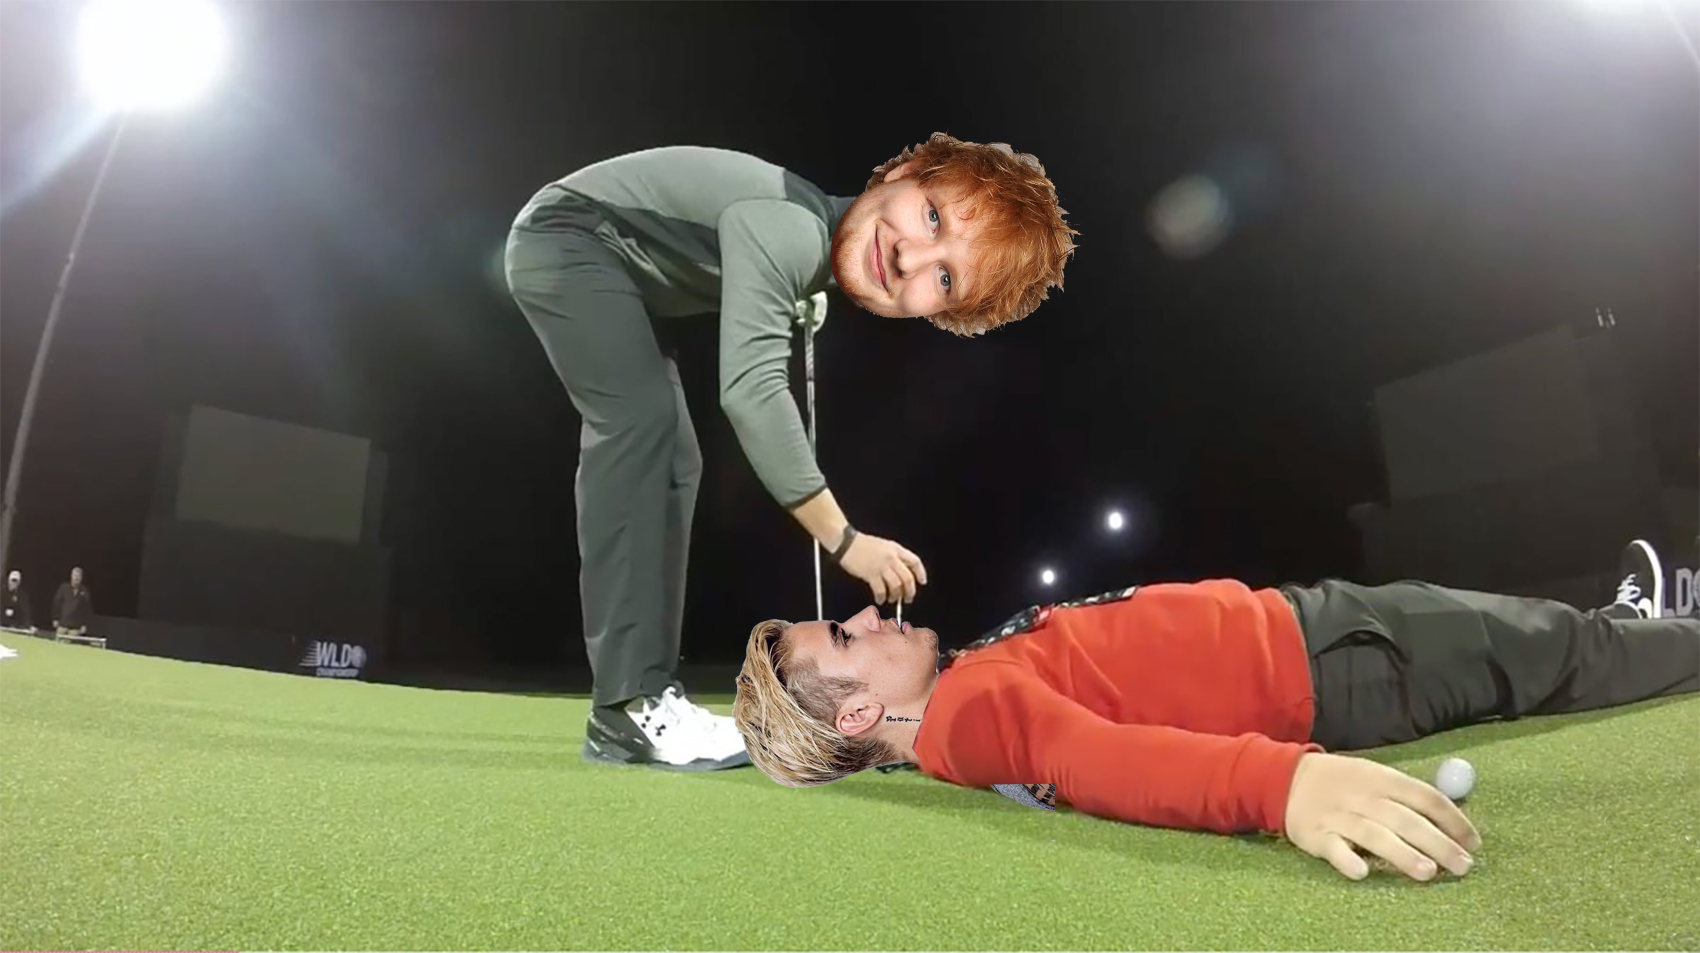 That One Time Ed Sheeran Got Drunk And Hit Justin Bieber In The Face